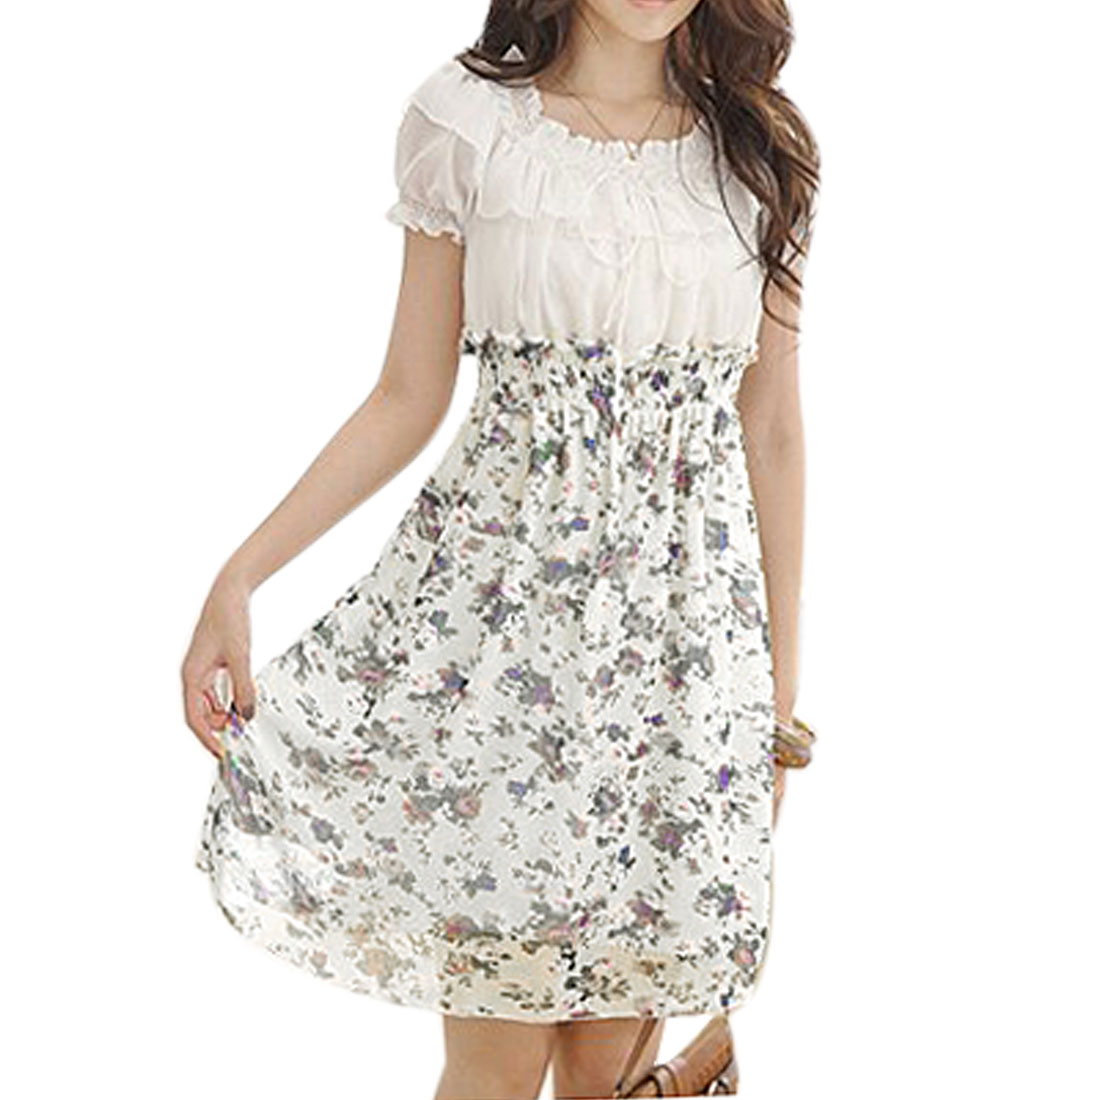 Purple Flower Prints White Chiffon Above Knee Summer Dress for Lady XS